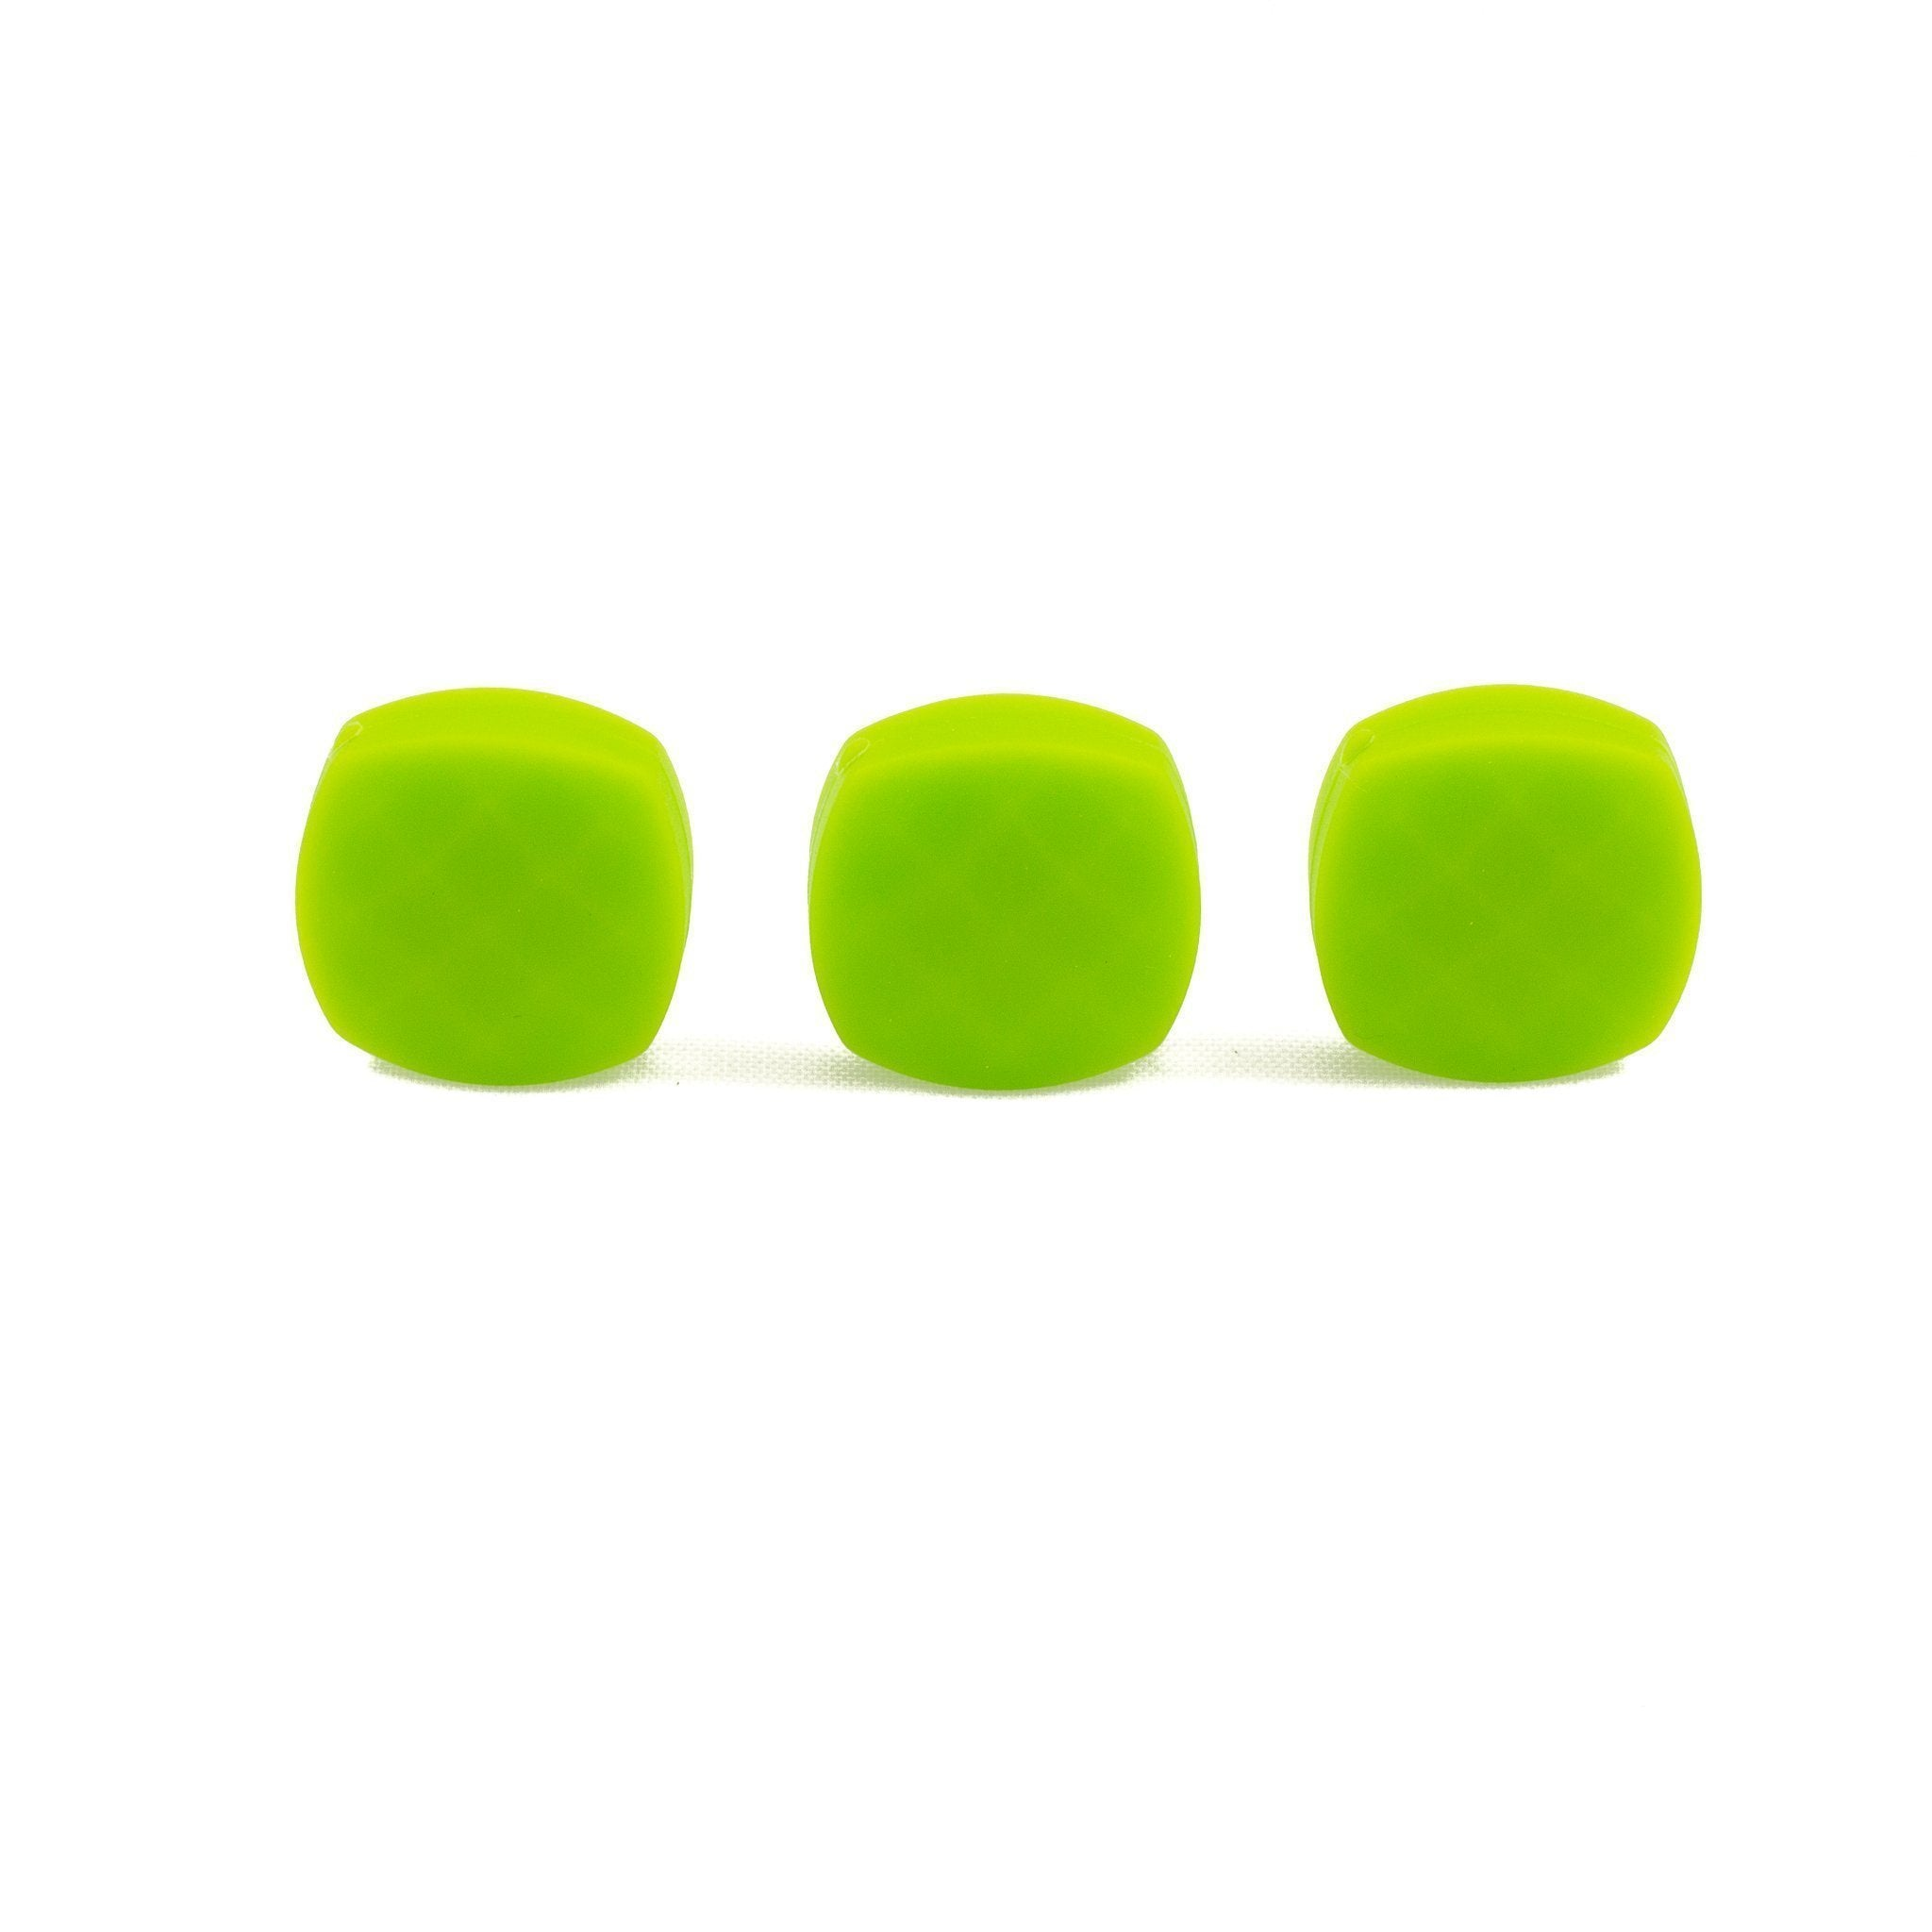 Quadrates - Chomp Chew Bead Designs - Wholesale Silicone Beads for Teething and DIY Chewelry Making